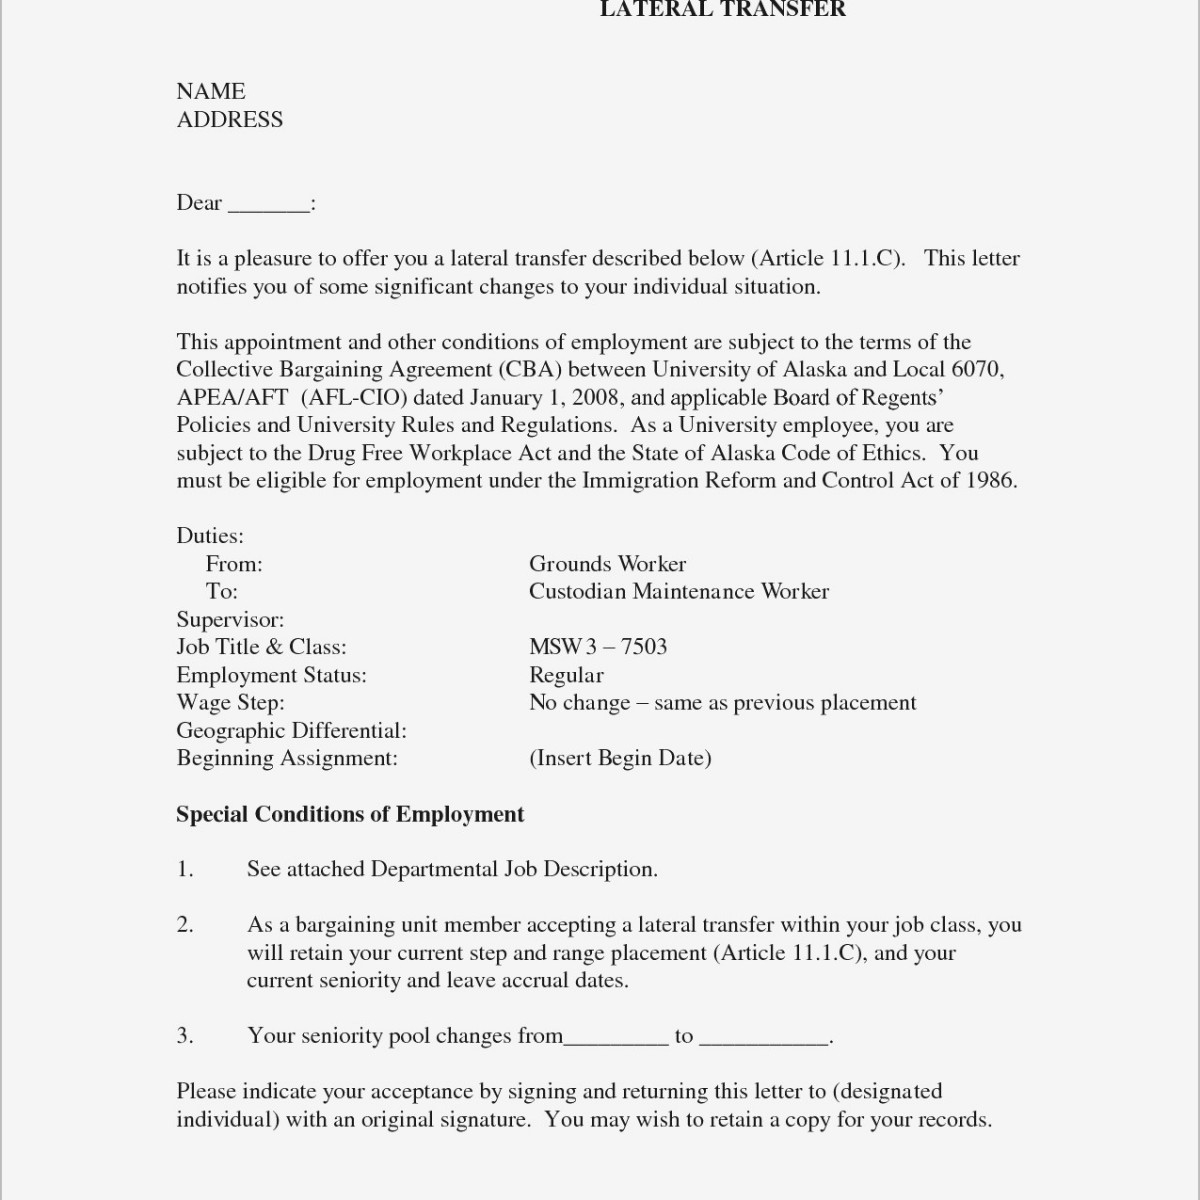 teacher assistant resume no experience example-Teacher assistant Resume with No Experience Fresh Job Resumes Examples New Fresh Resume 0d Resume for 11-a